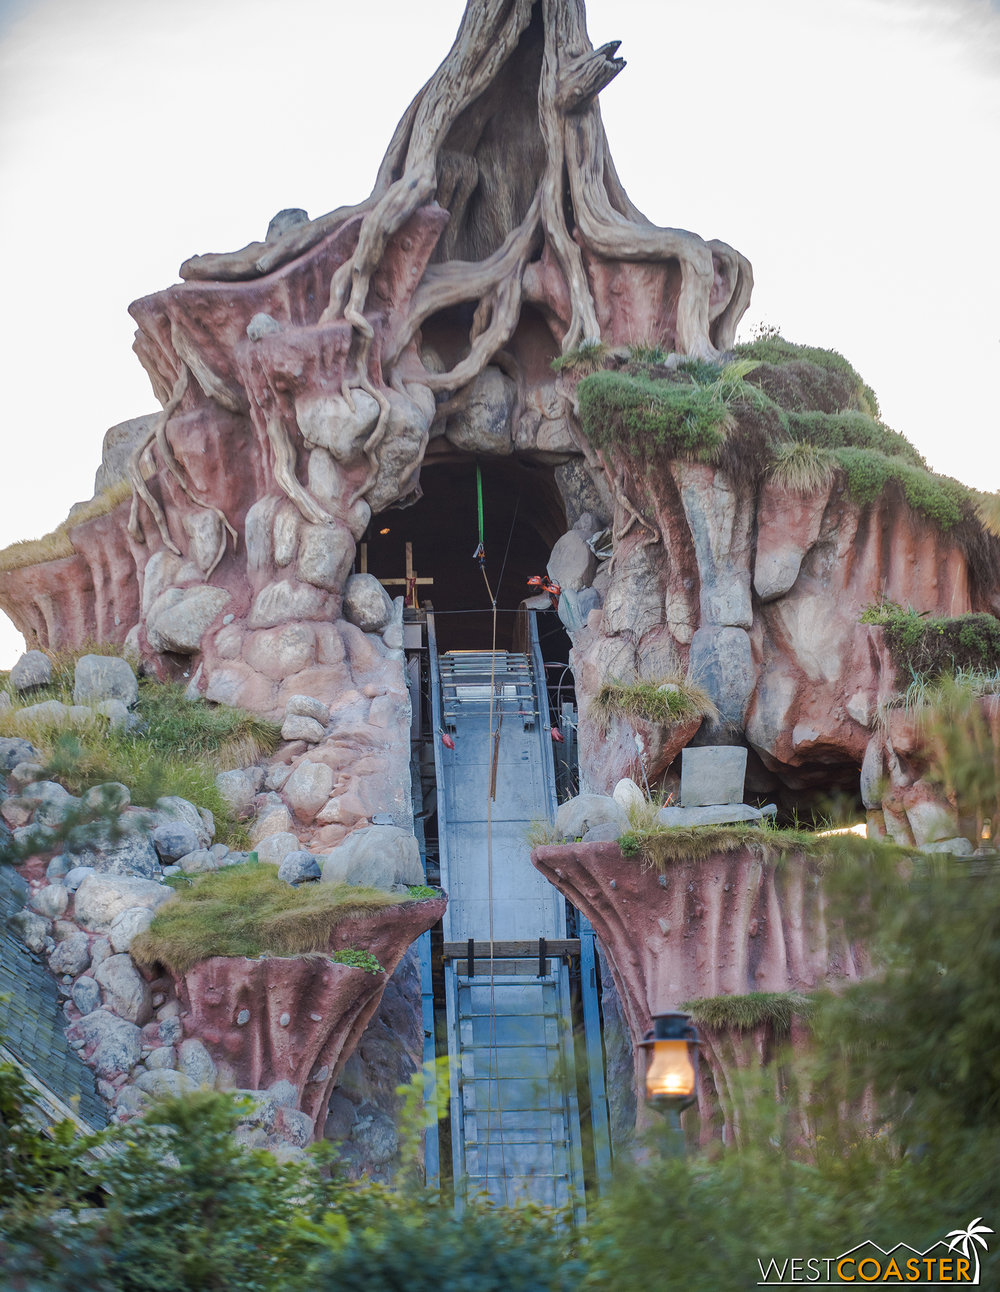 Splash Mountain... still not splashing.  Though at least the actual flume seems to be returning!